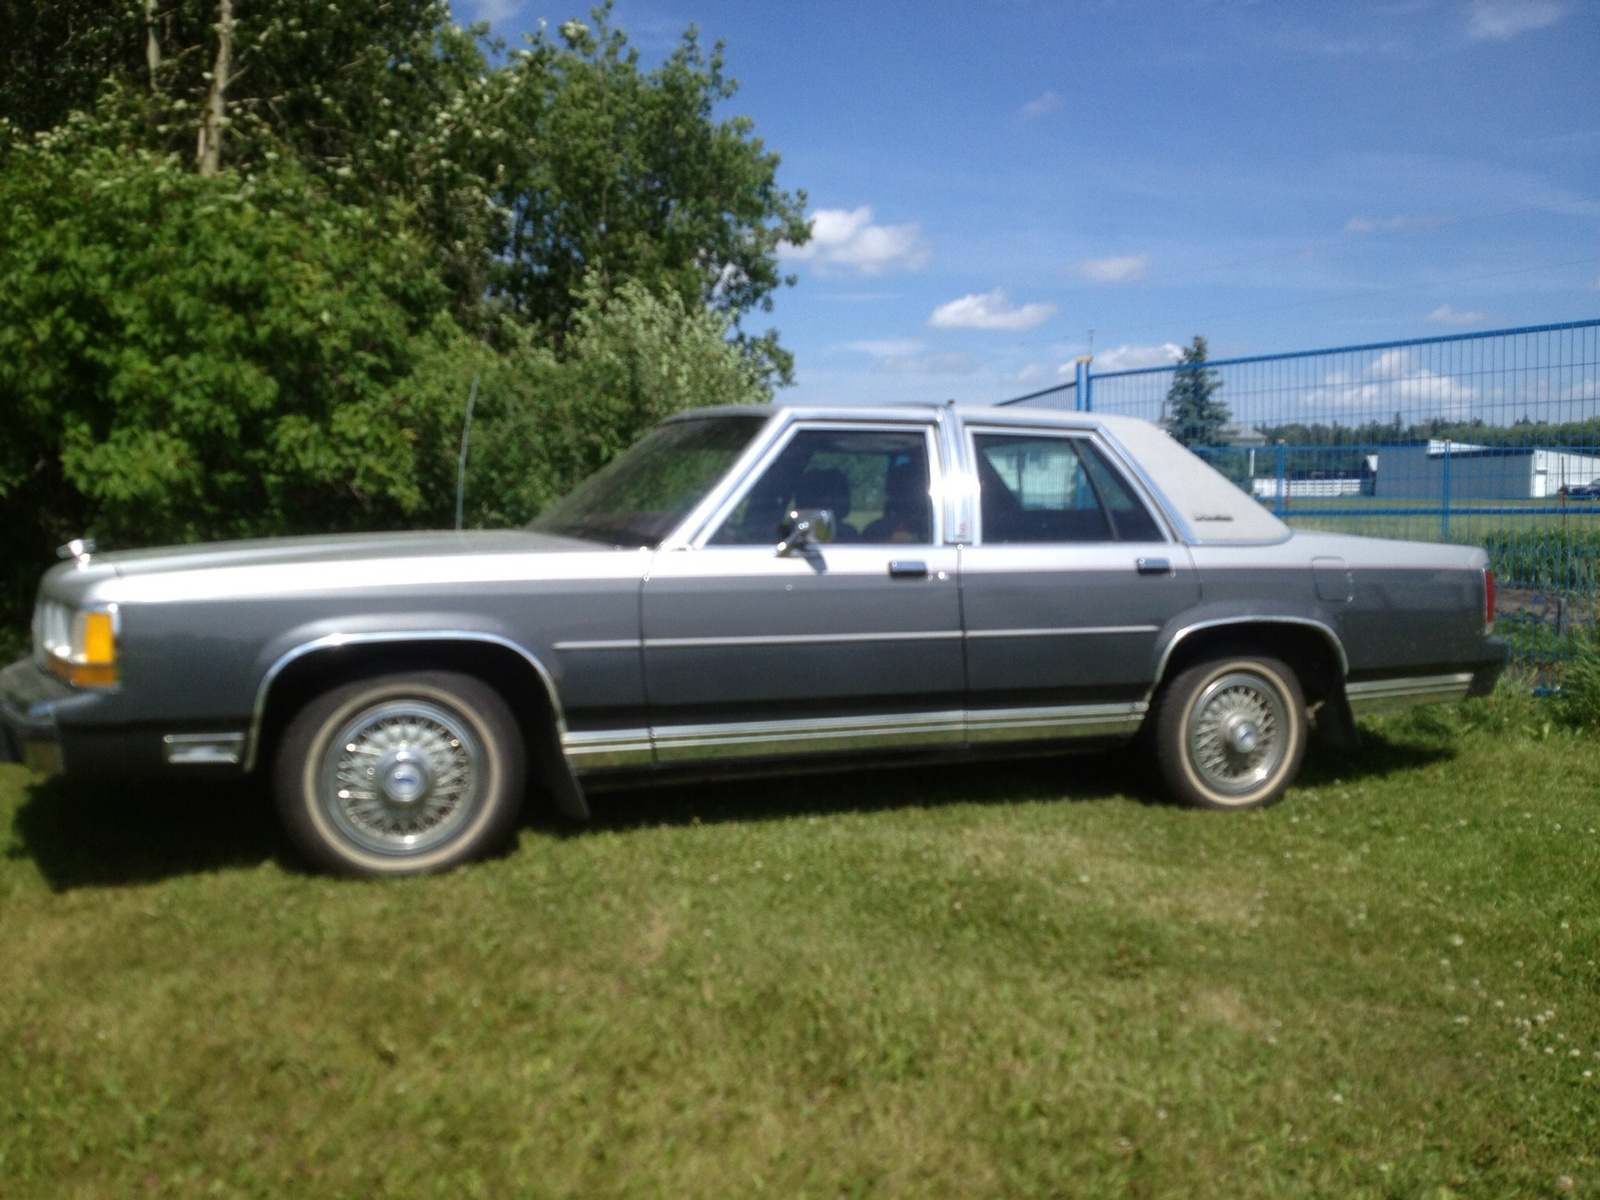 1983 Ford Ltd Crown Victoria Engine Diagram Wiring Libraries Police Interceptor Maintenance U0026 Repair Questions I Have A 1988 Ini